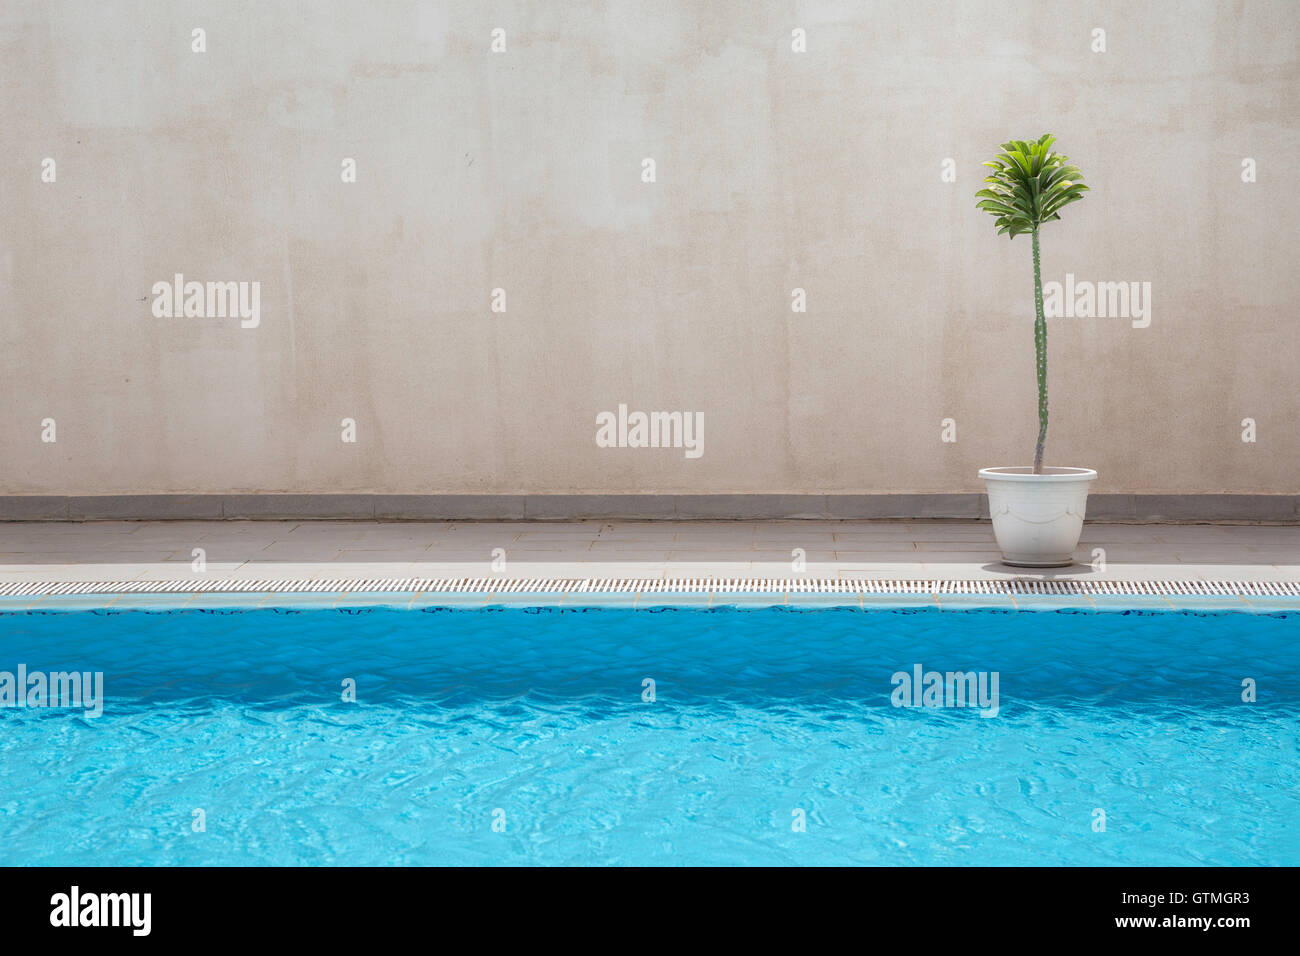 A potted cactus plant by the swimming pool in a hotel in Nouakchott, Mauritania - Stock Image